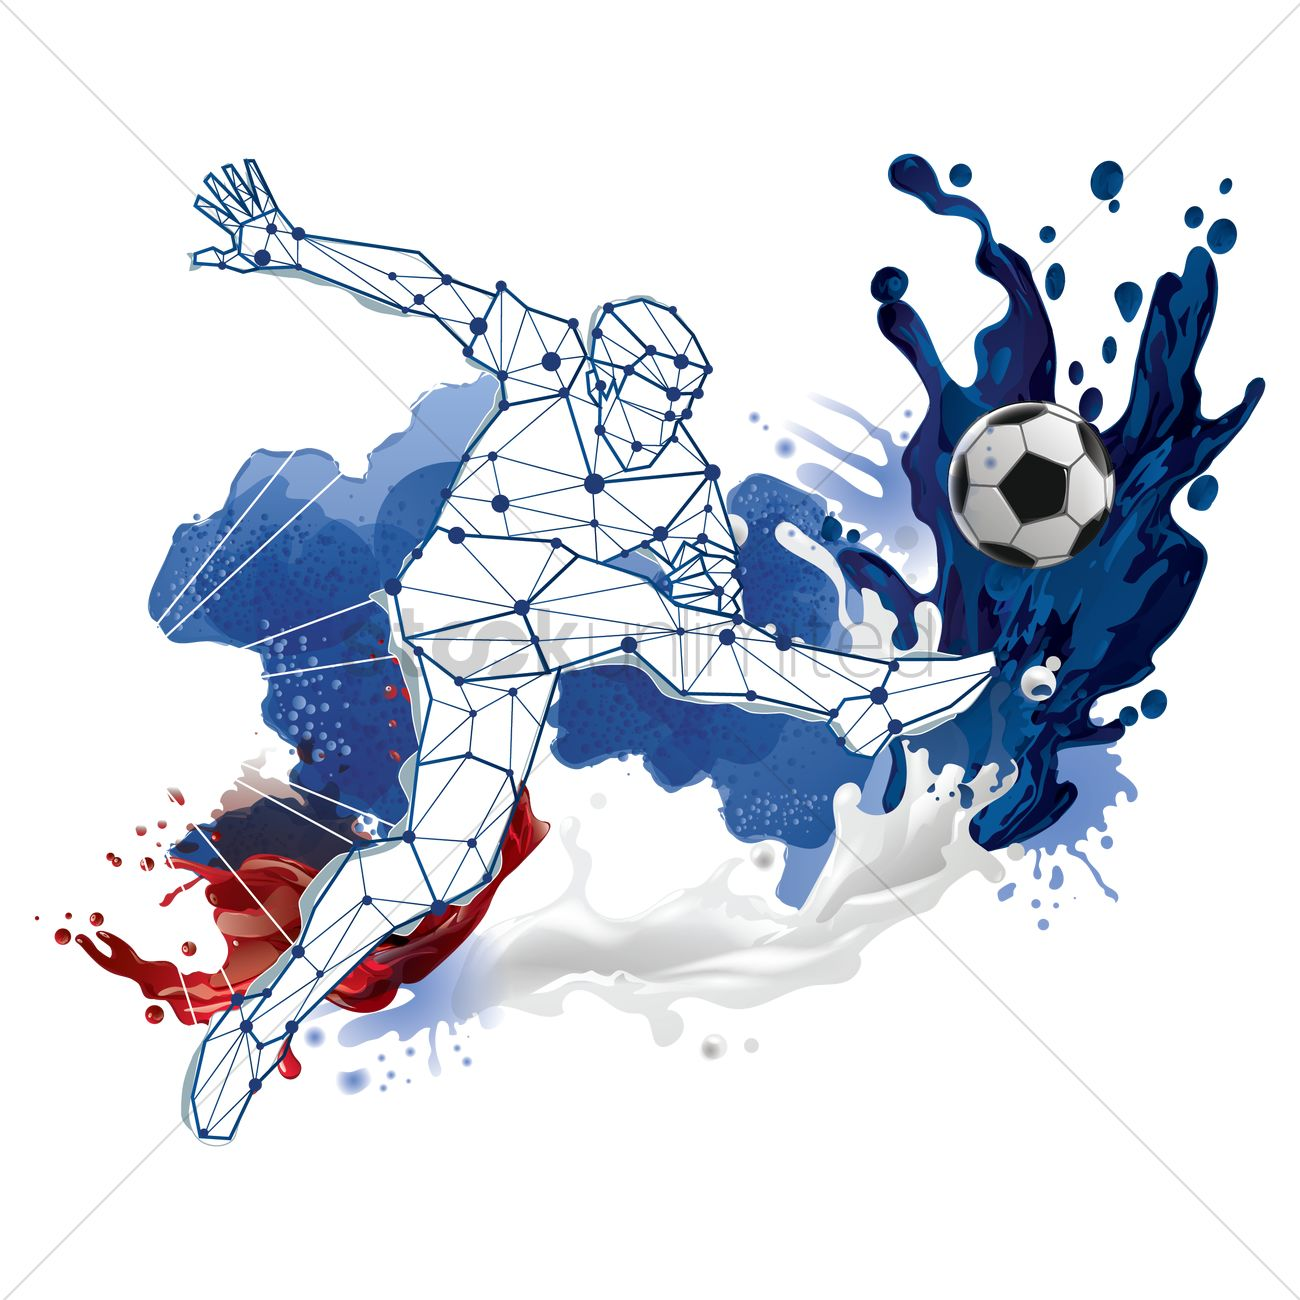 Abstract soccer player design Vector Image - 1818055 ...